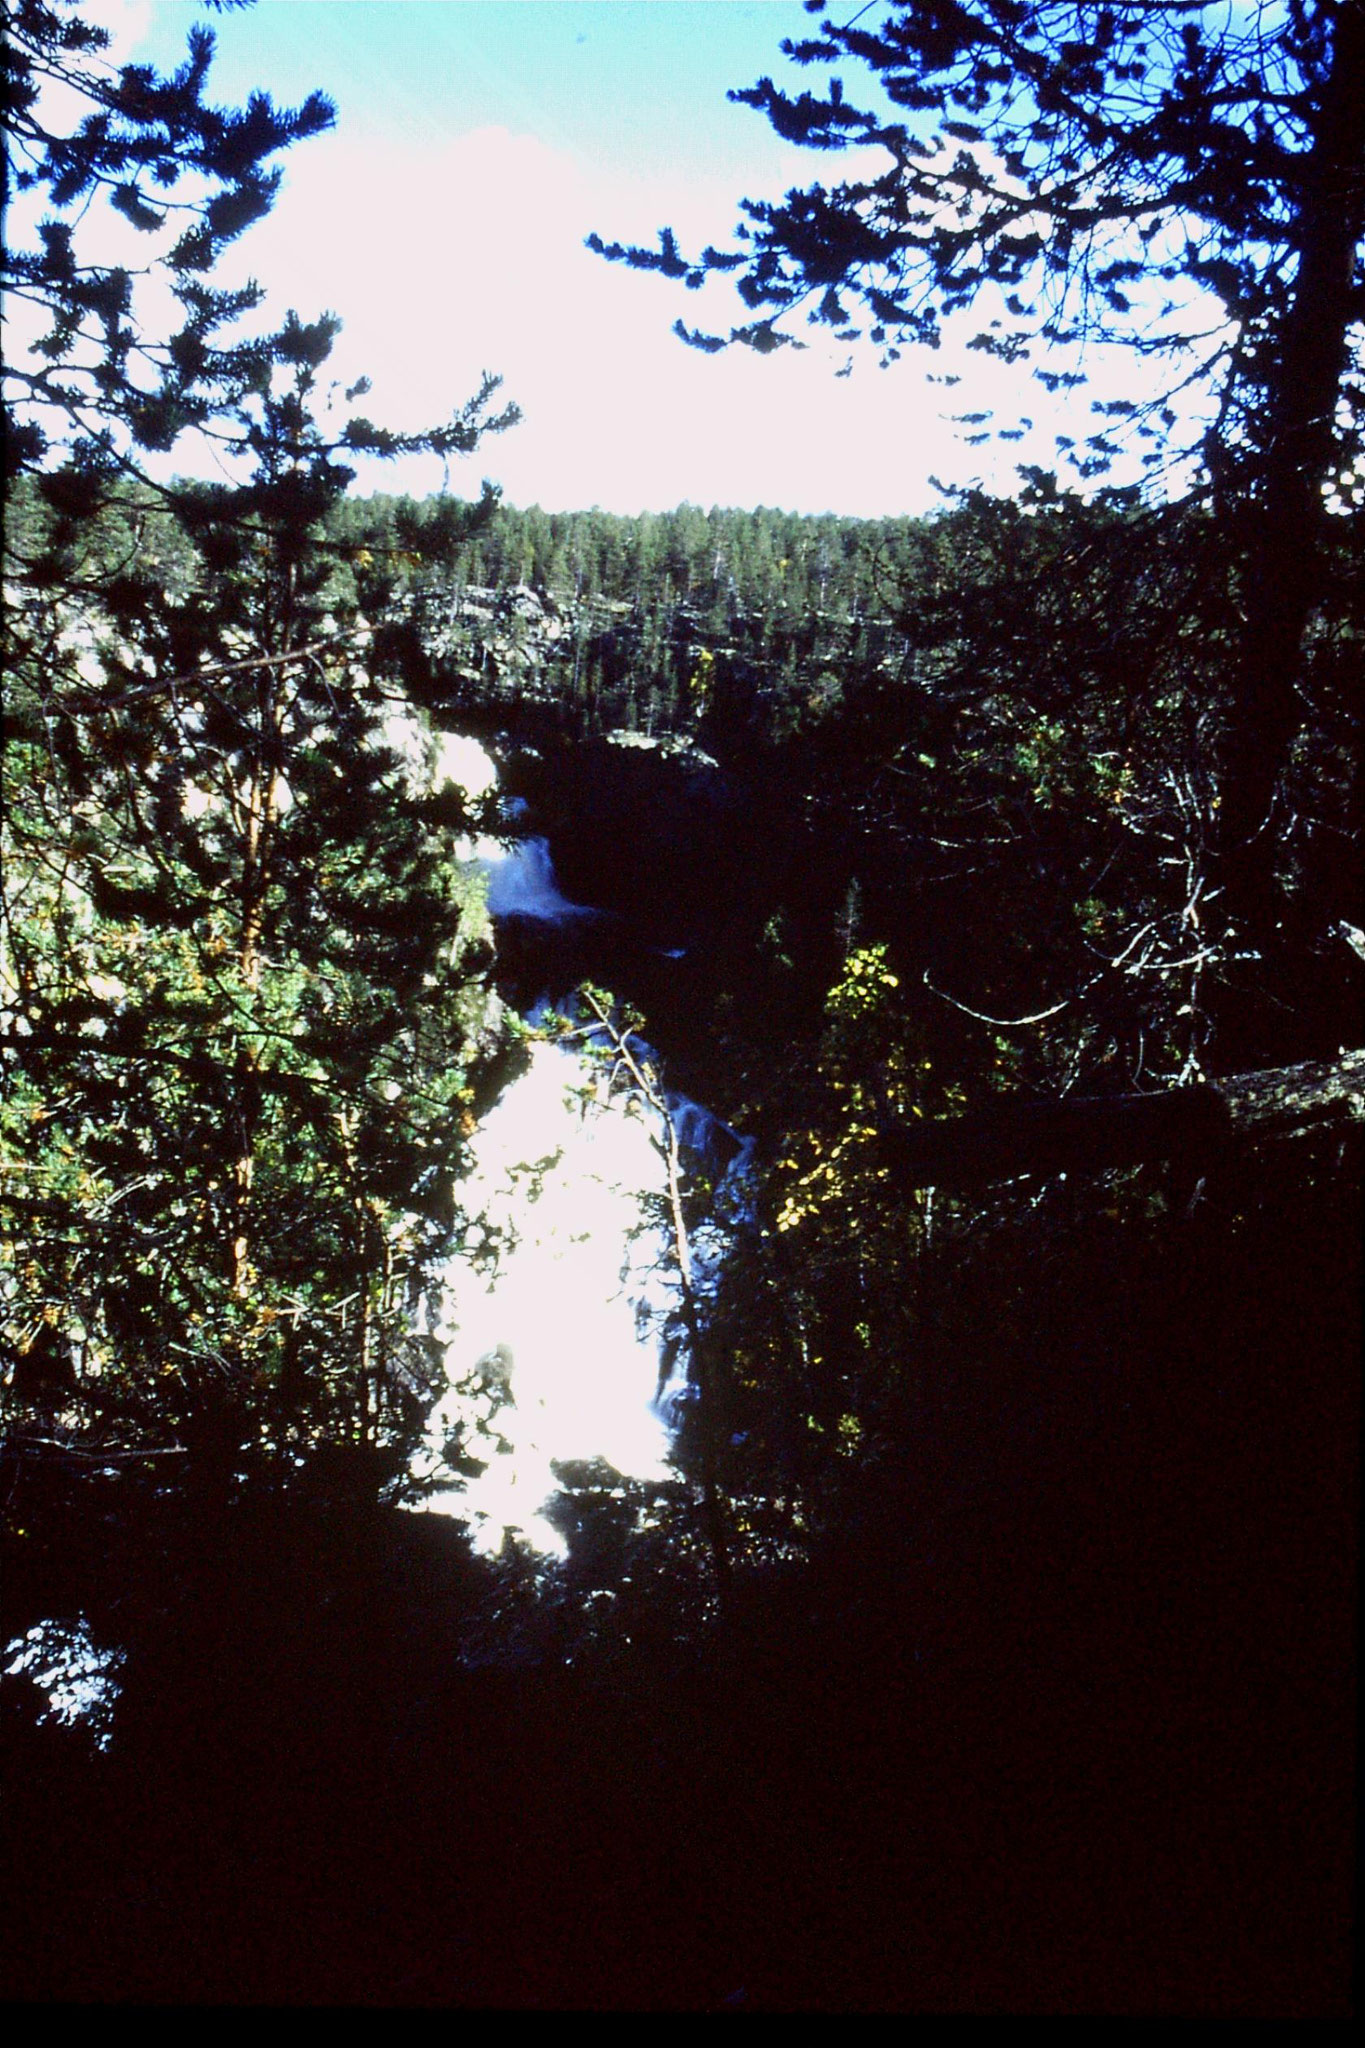 11/9/1988: 2: Muddus waterfall